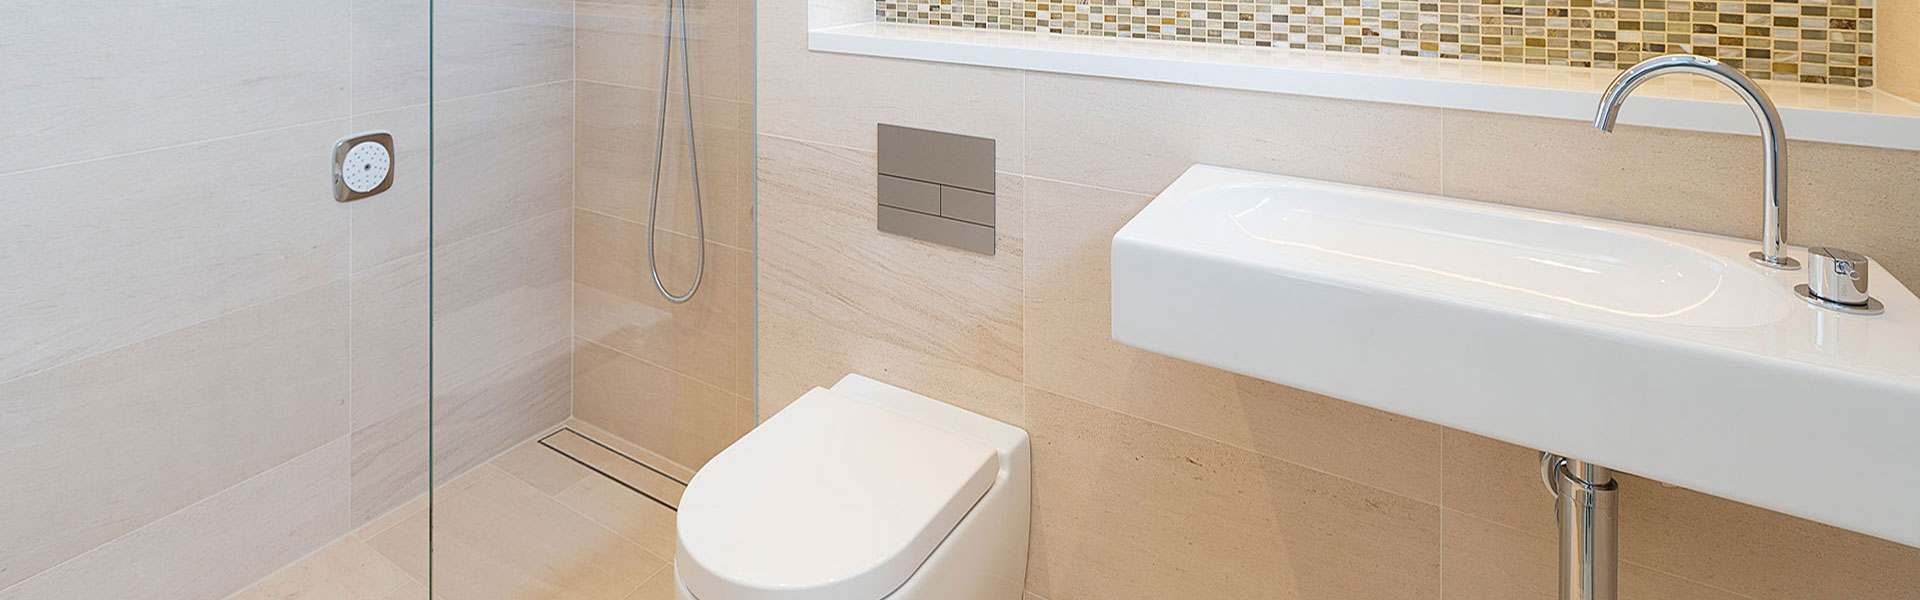 Sydney Bathroom Co Renovation Specialists